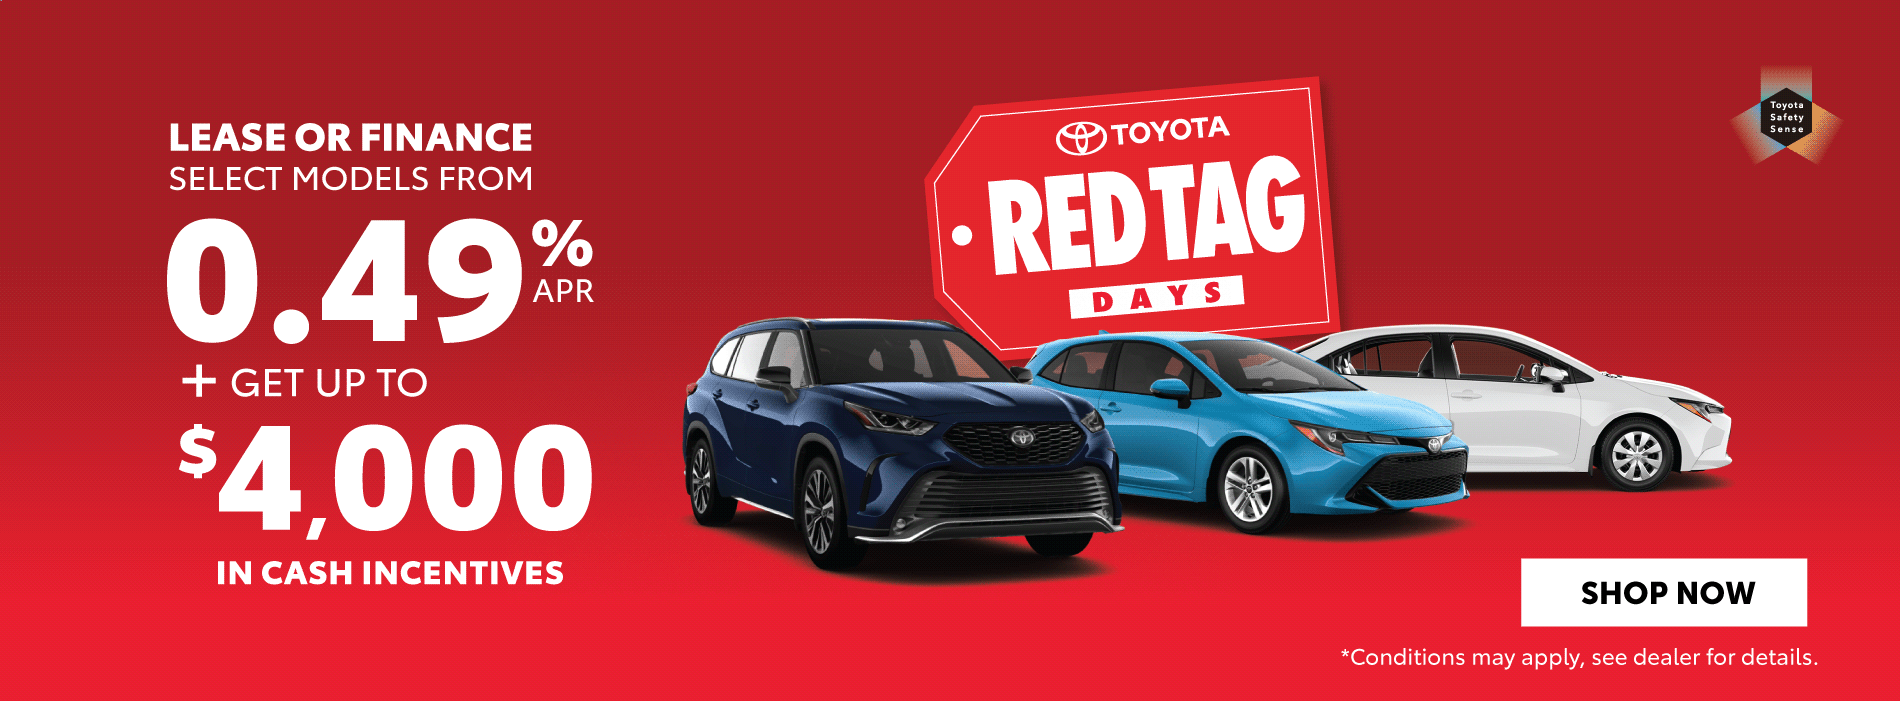 Red Tag Days Offers Orangeville Toyota